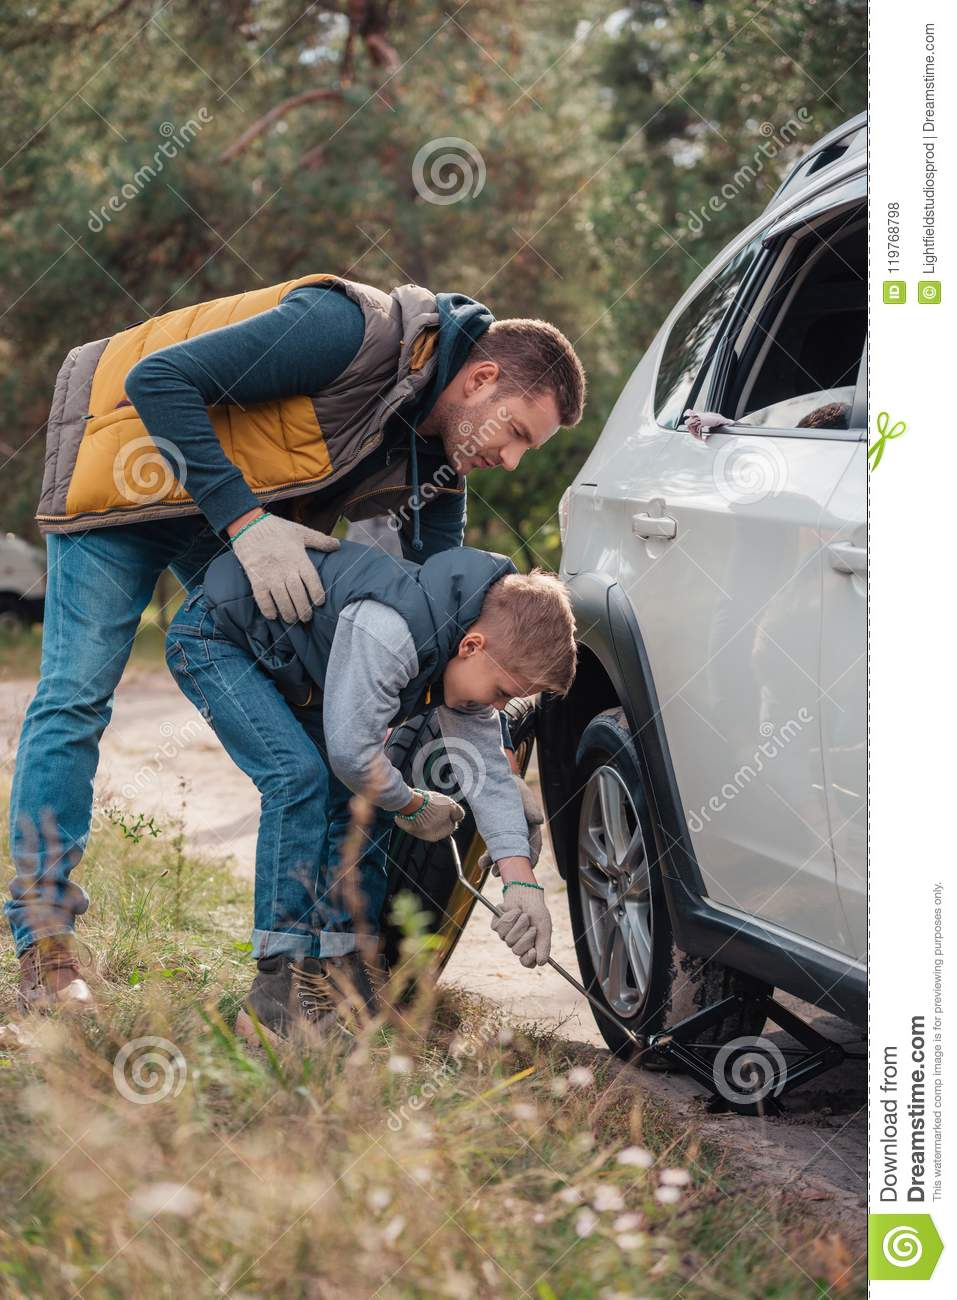 full length view of father and son changing car wheel together